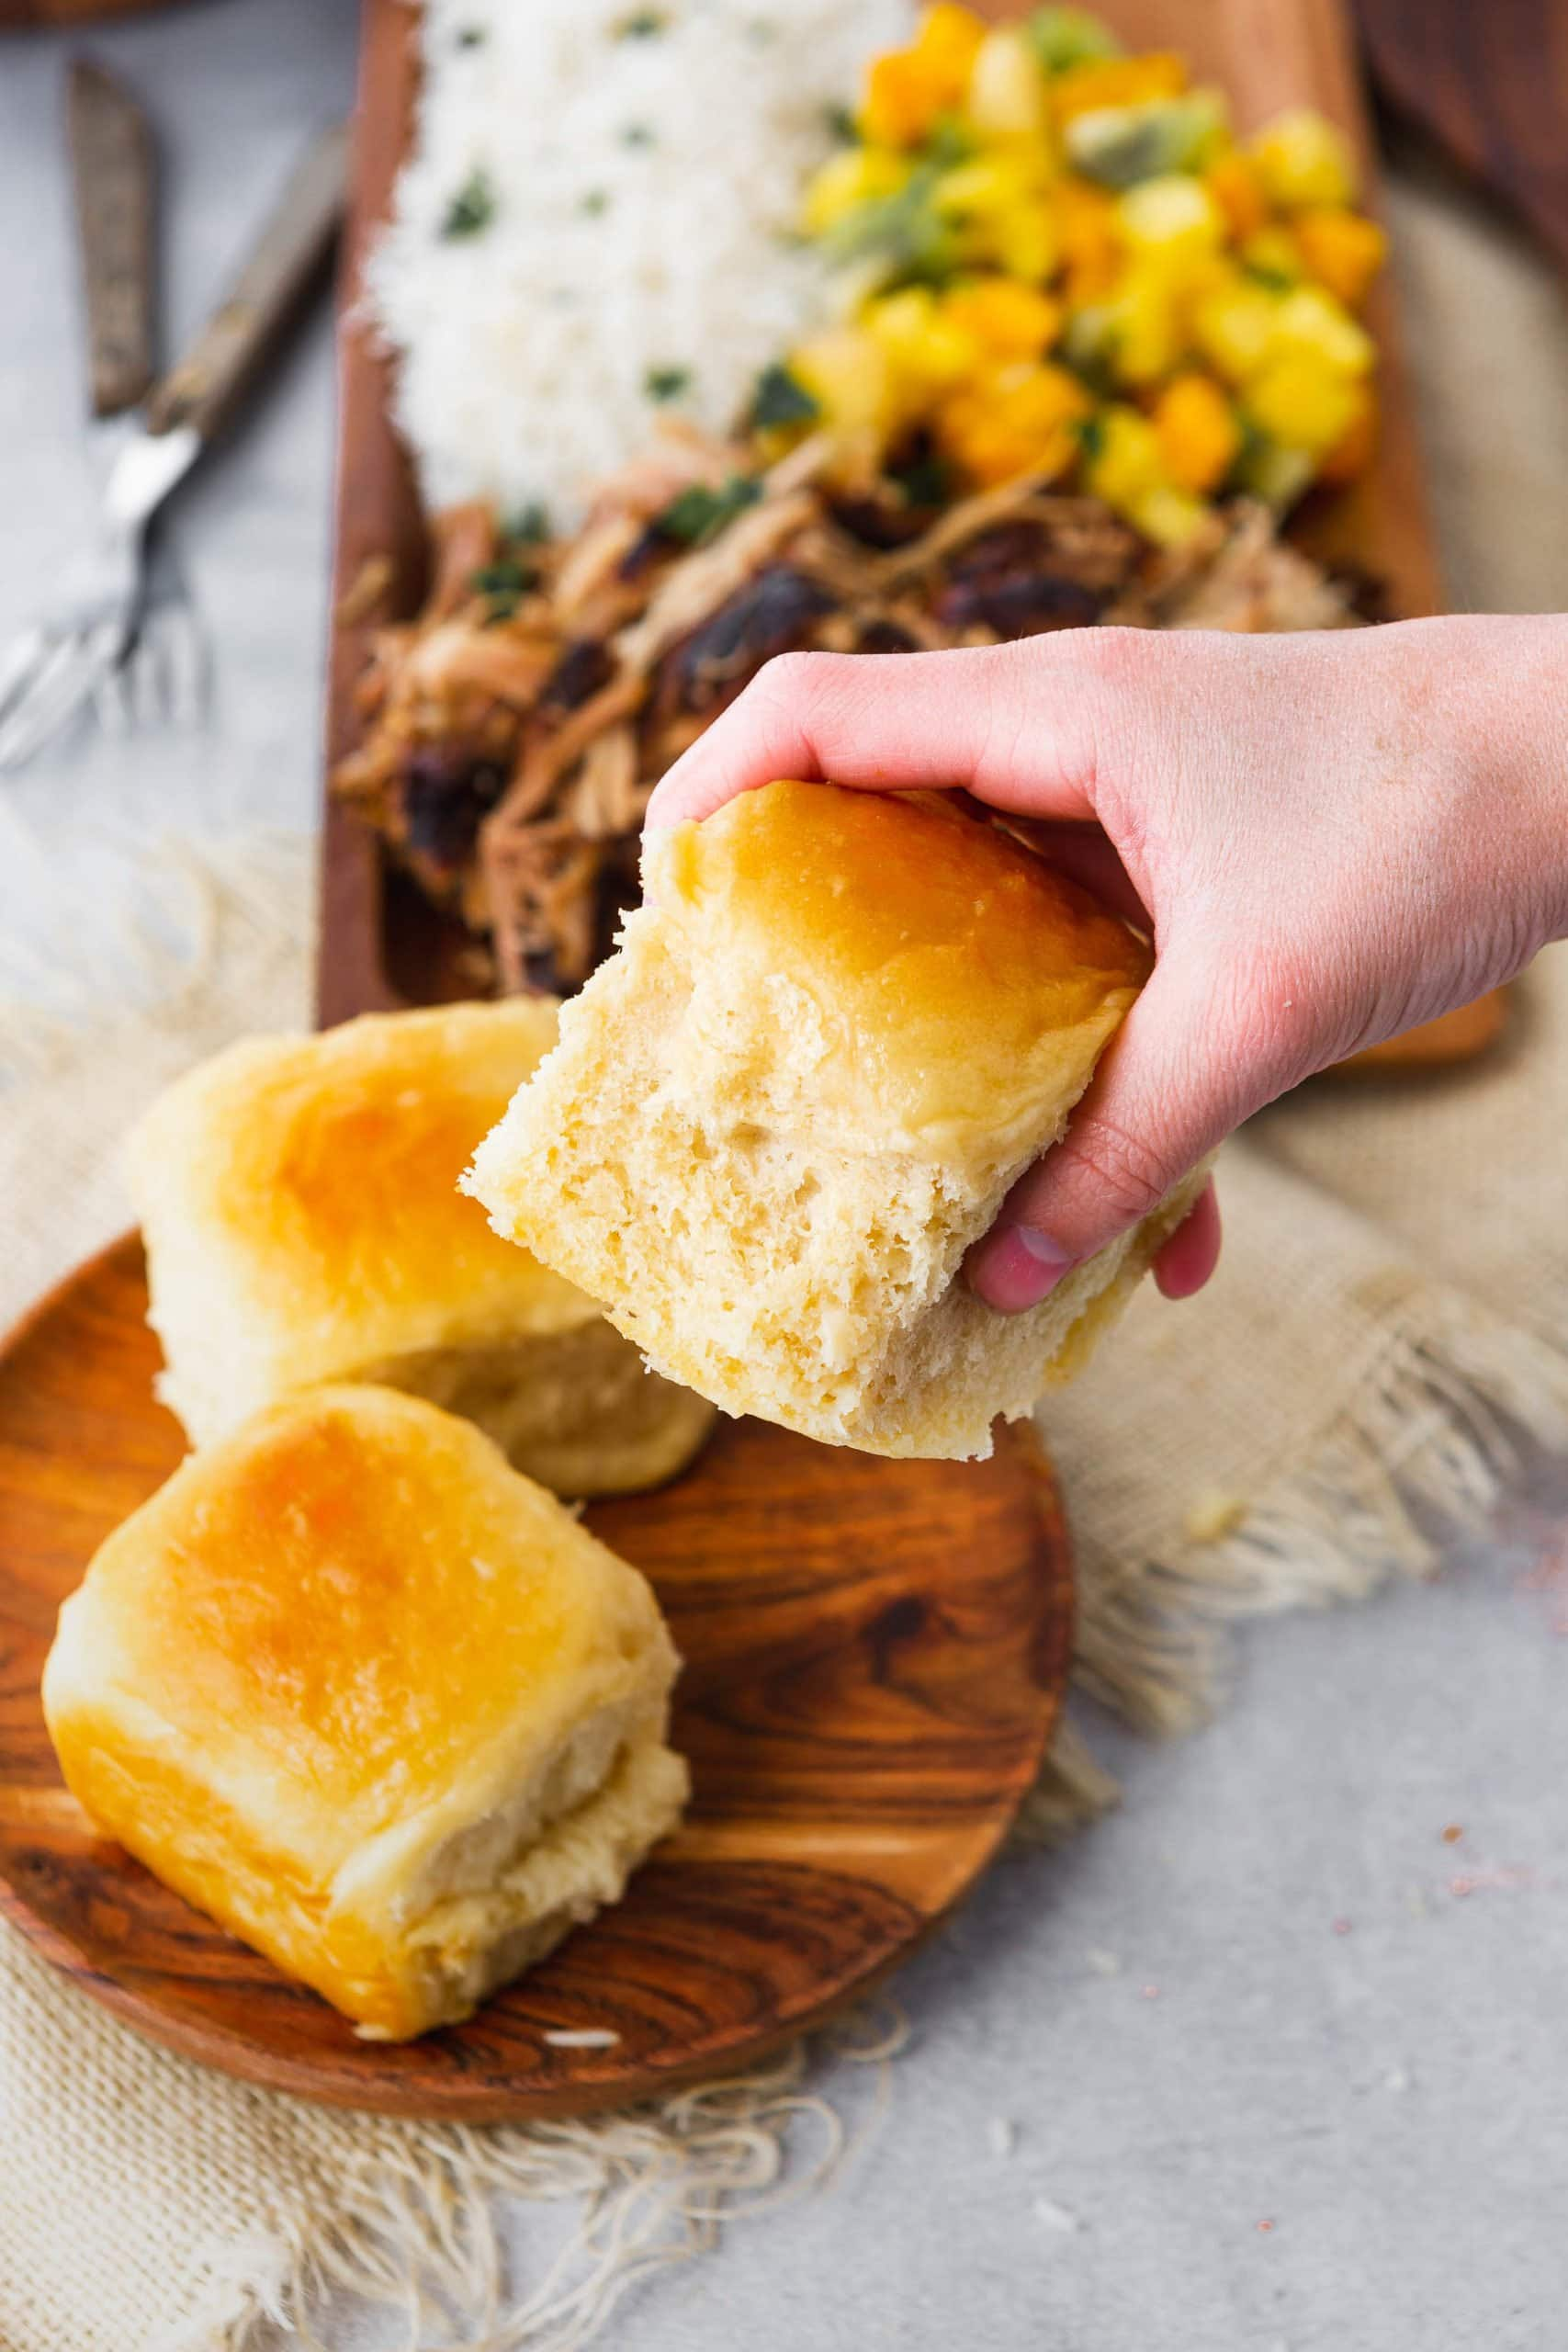 a photo of a soft hawaiian roll being picked up from a wooden plate with two other rolls on it.